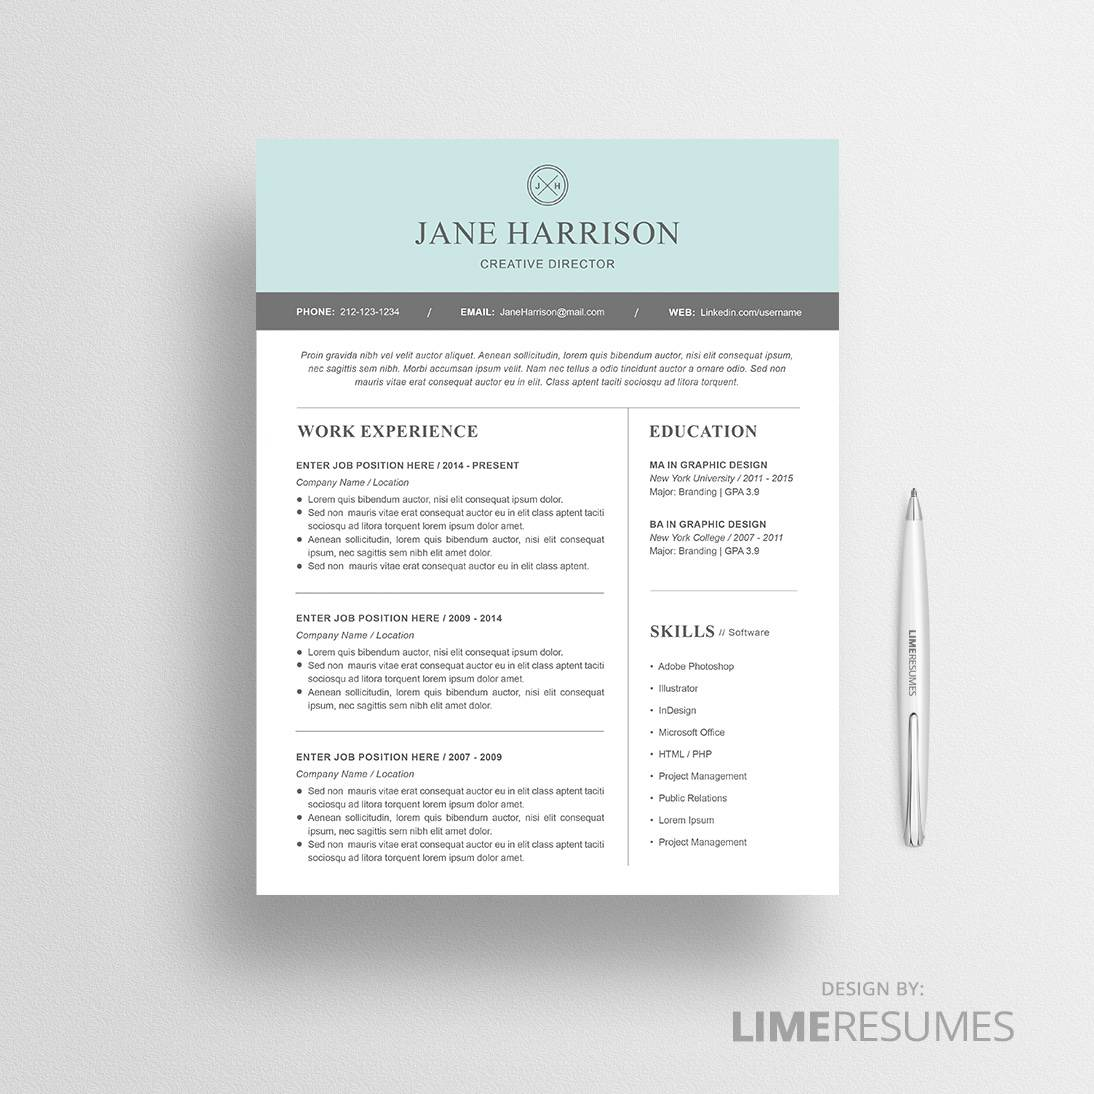 ressume template - modern resume template for microsoft word limeresumes